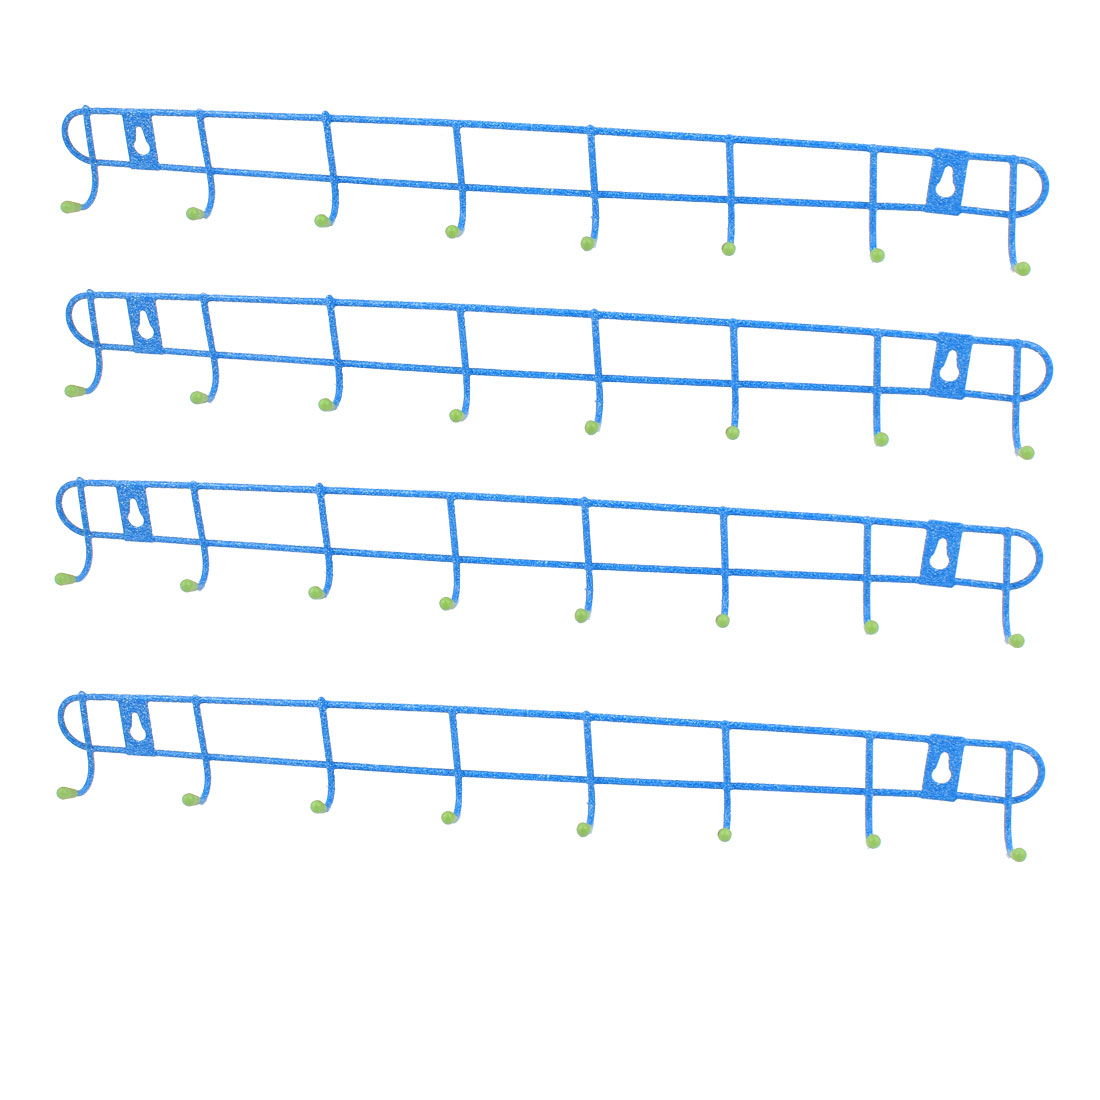 Metal 8 Hooks Bedroom Bathroom Kitchenware Hat Coat Towel Wall Hanger Rack Holder 4PCS